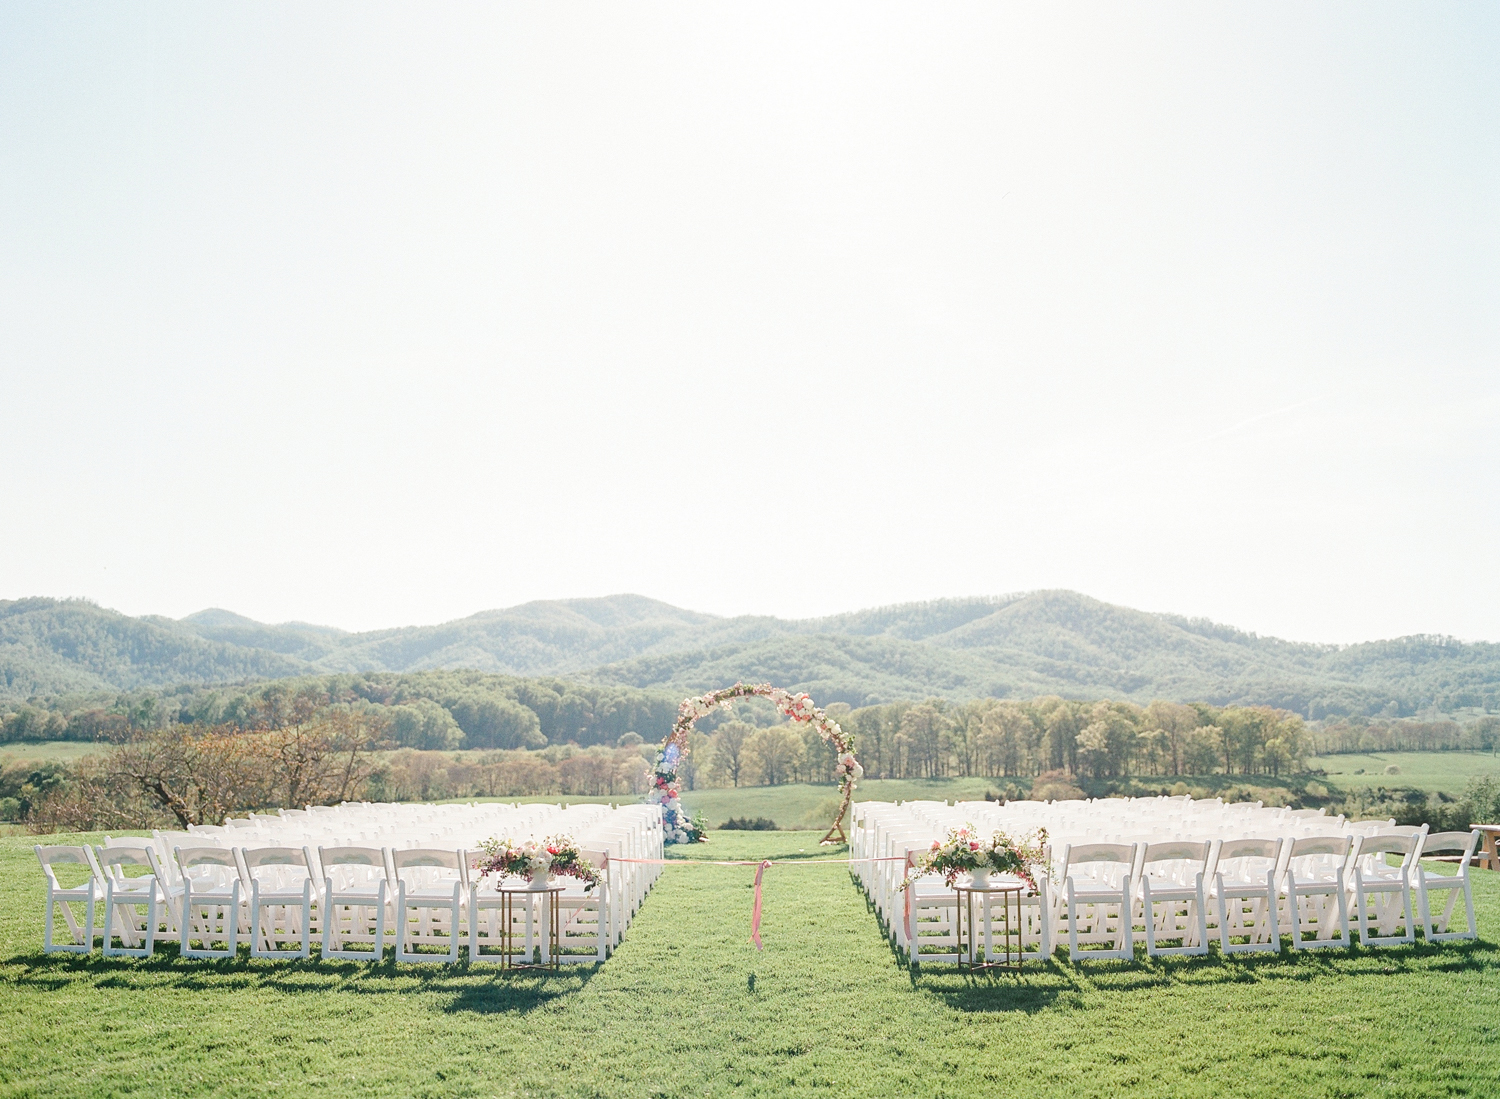 Wedding ceremony set up with flower arch